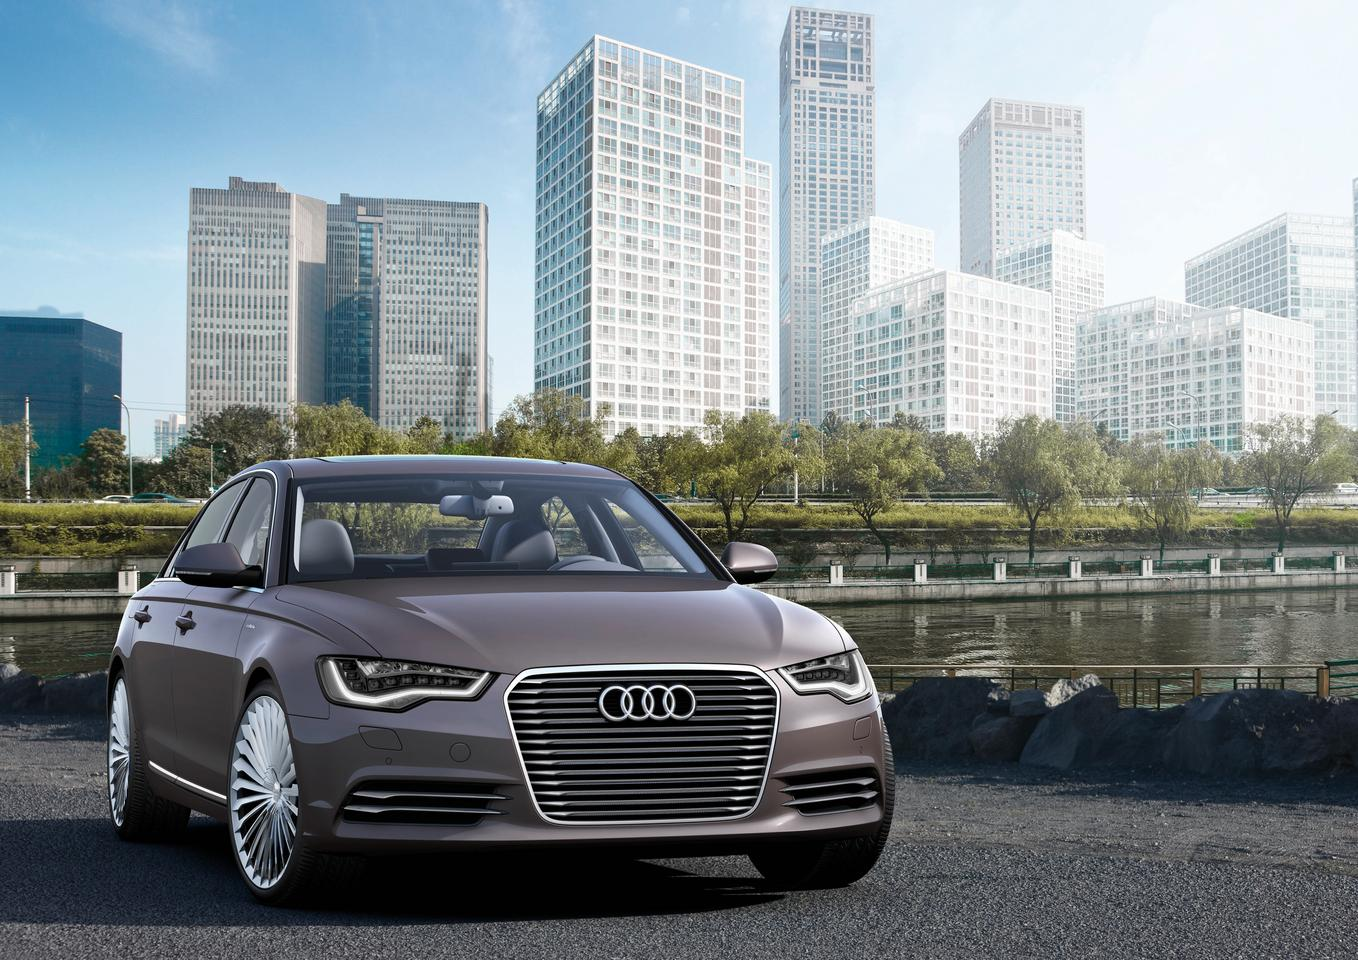 The Audi A6 L e-tron concept is the first luxury-class e-tron concept vehicle